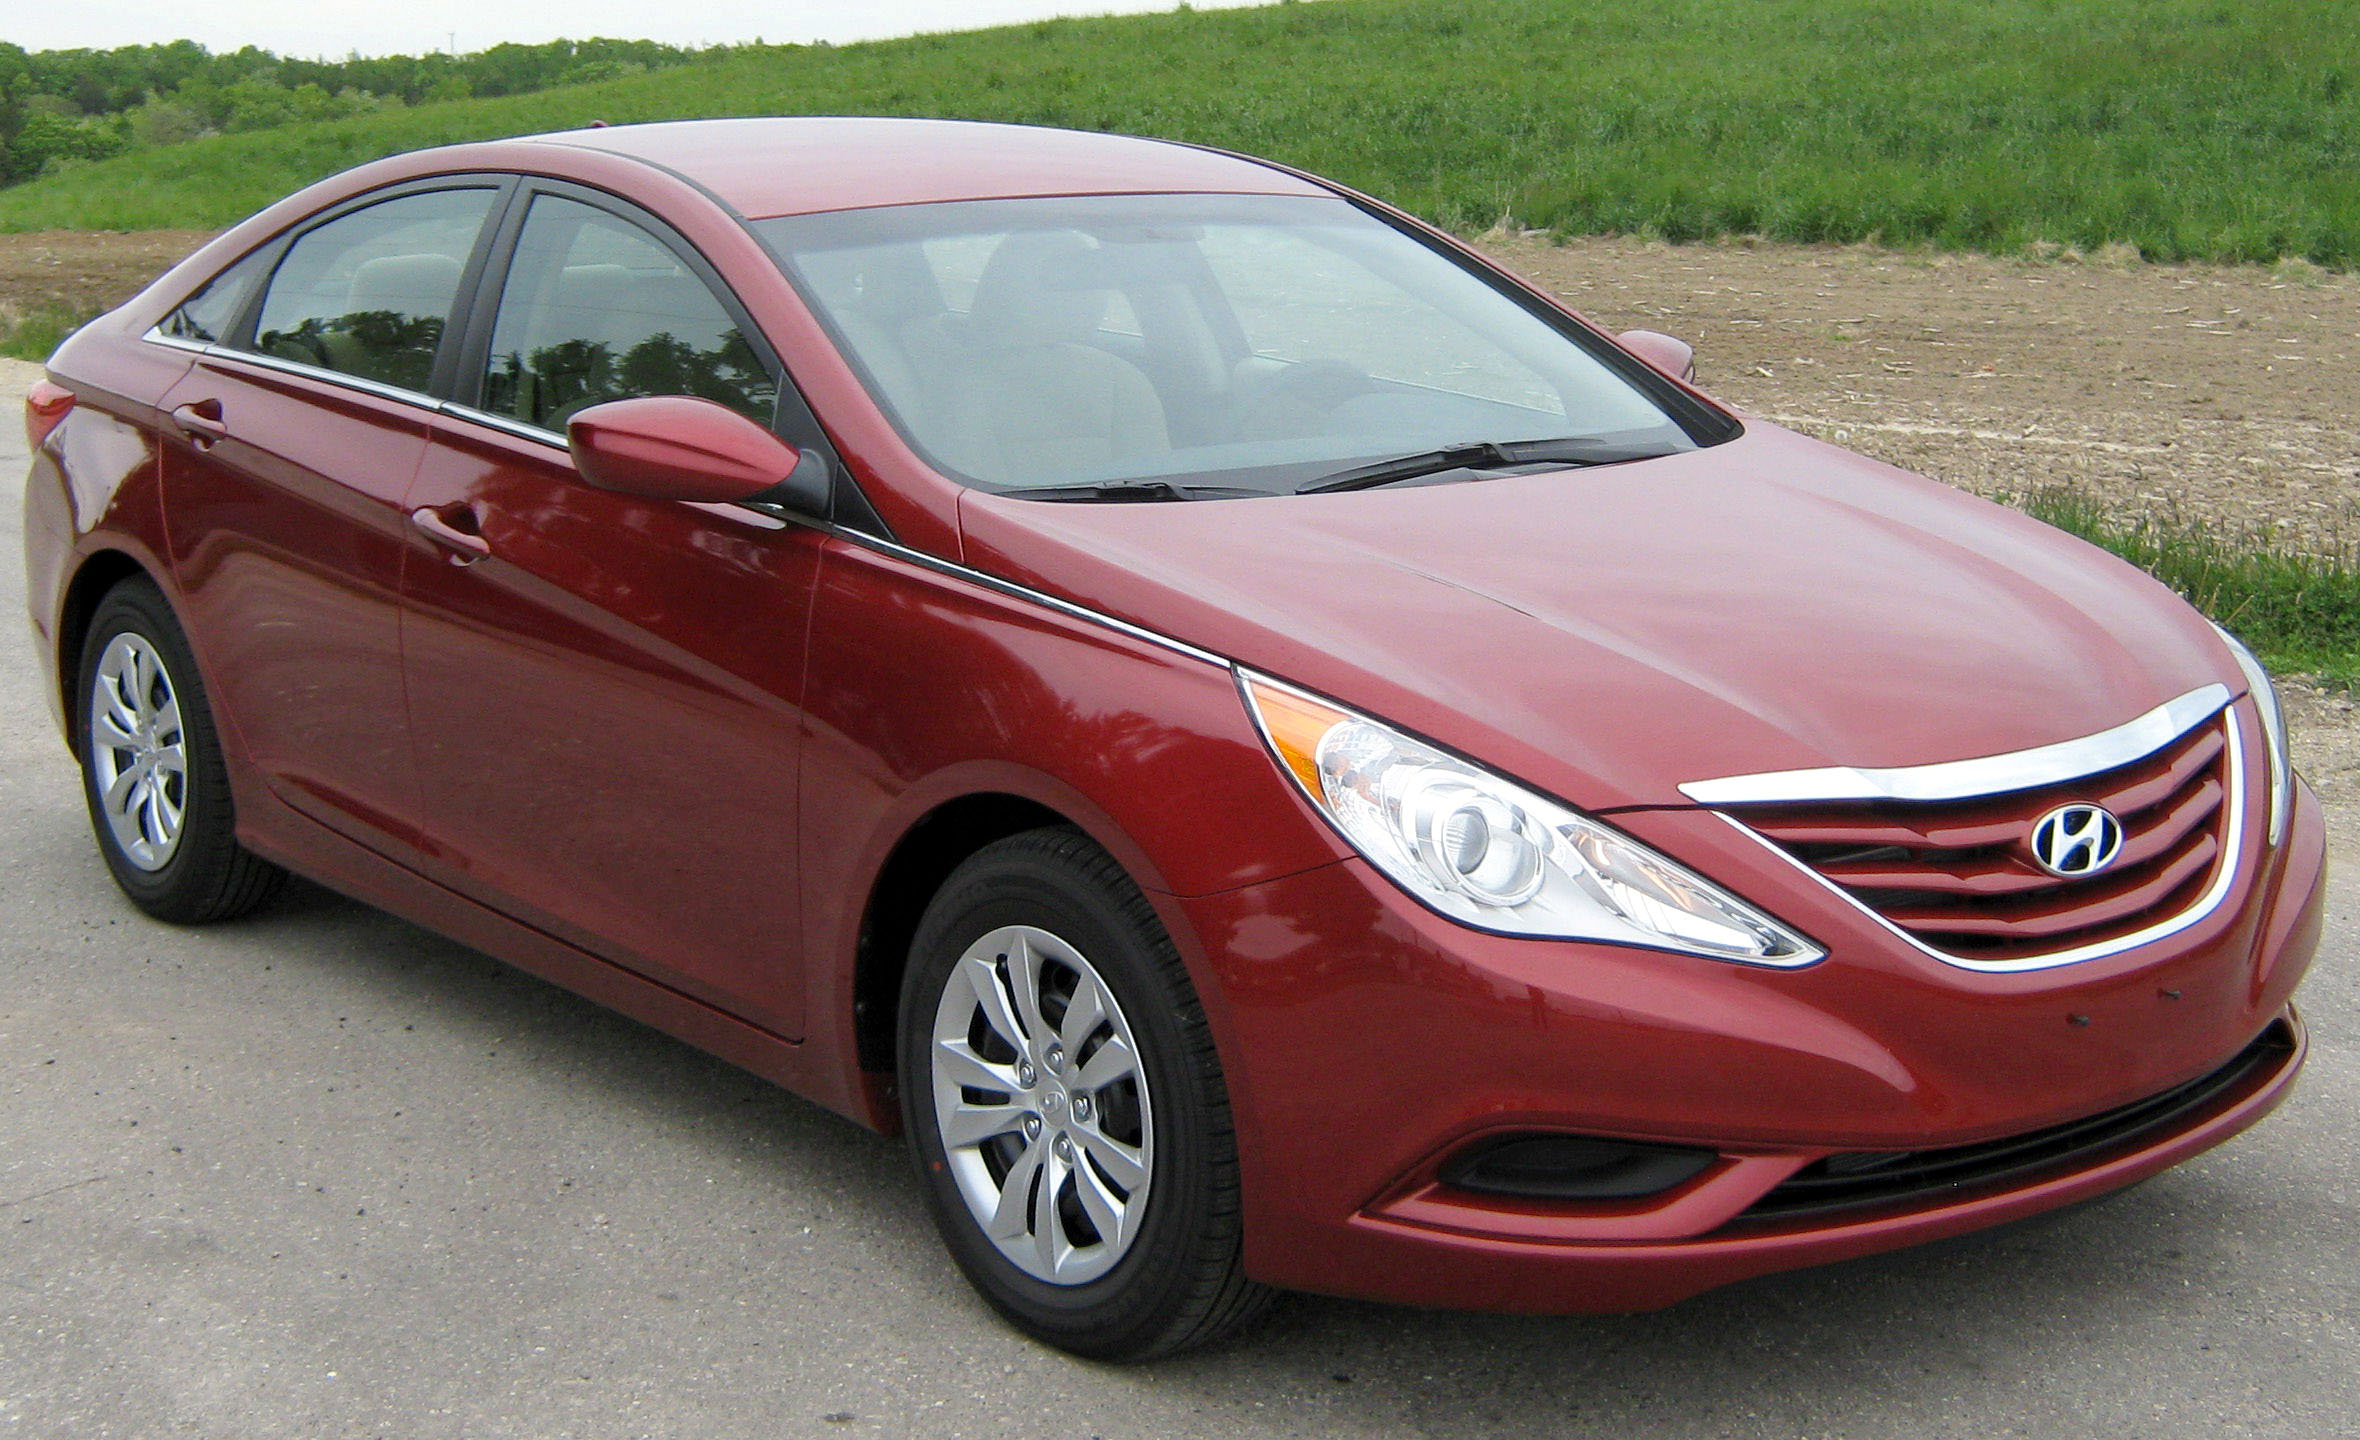 hyundai sonata, photo #7